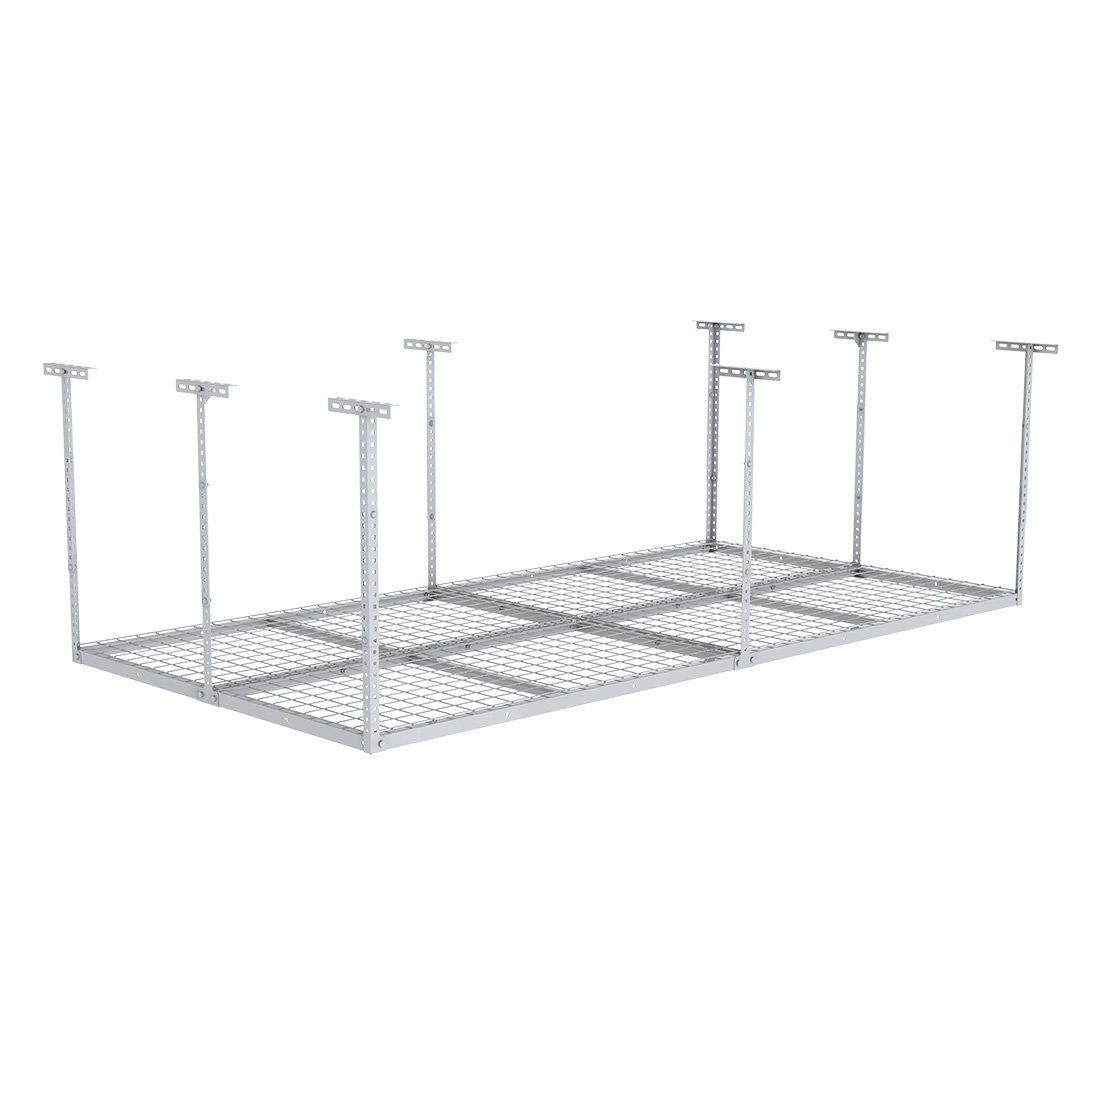 "Fleximounts 96"" Length x 48"" Width x 40"" Height Adjustable Ceiling Storage Rack 4x8 Overhead Garage white"